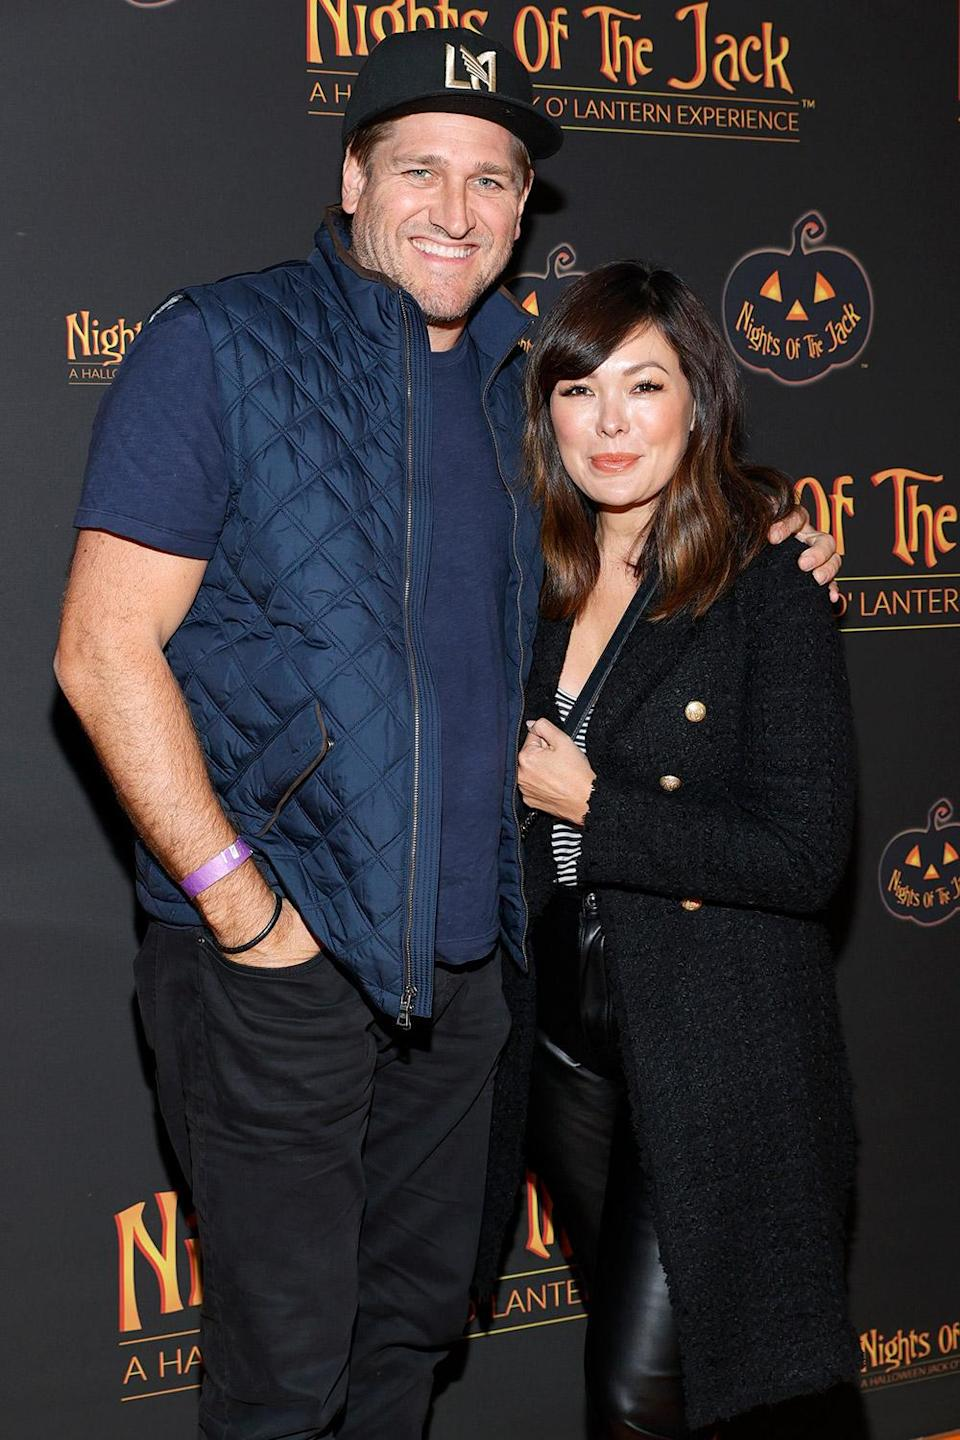 <p>keeping close at Nights of the Jack's friends and family preview night in Calabasas, California, on Oct. 1.</p>